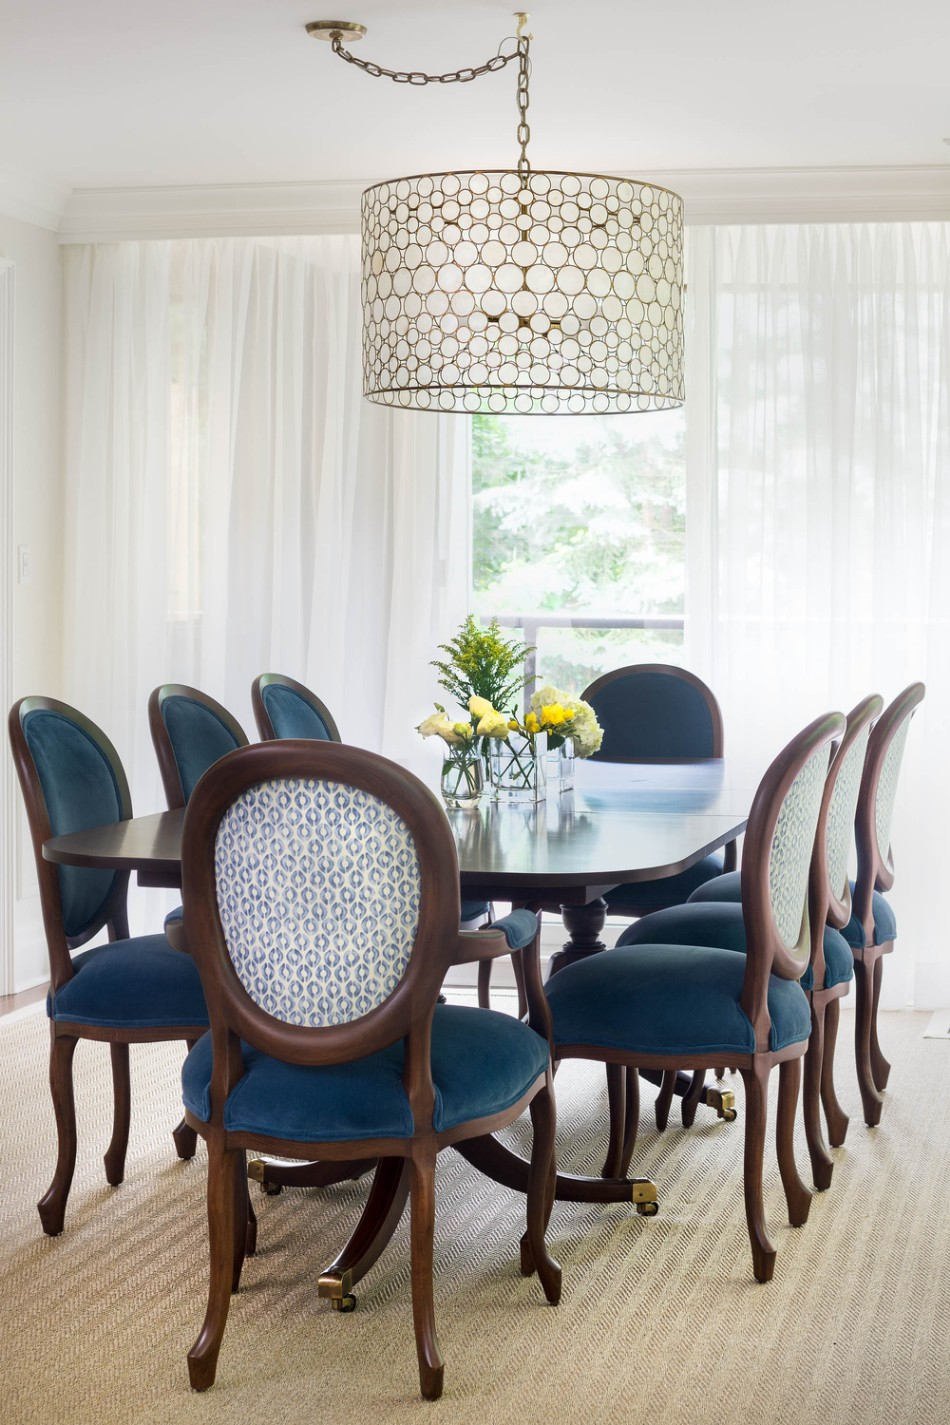 Amazing Chandelier Give Light To Your Dining Room With These Amazing Chandeliers RHD 7877 Edit EditWEB